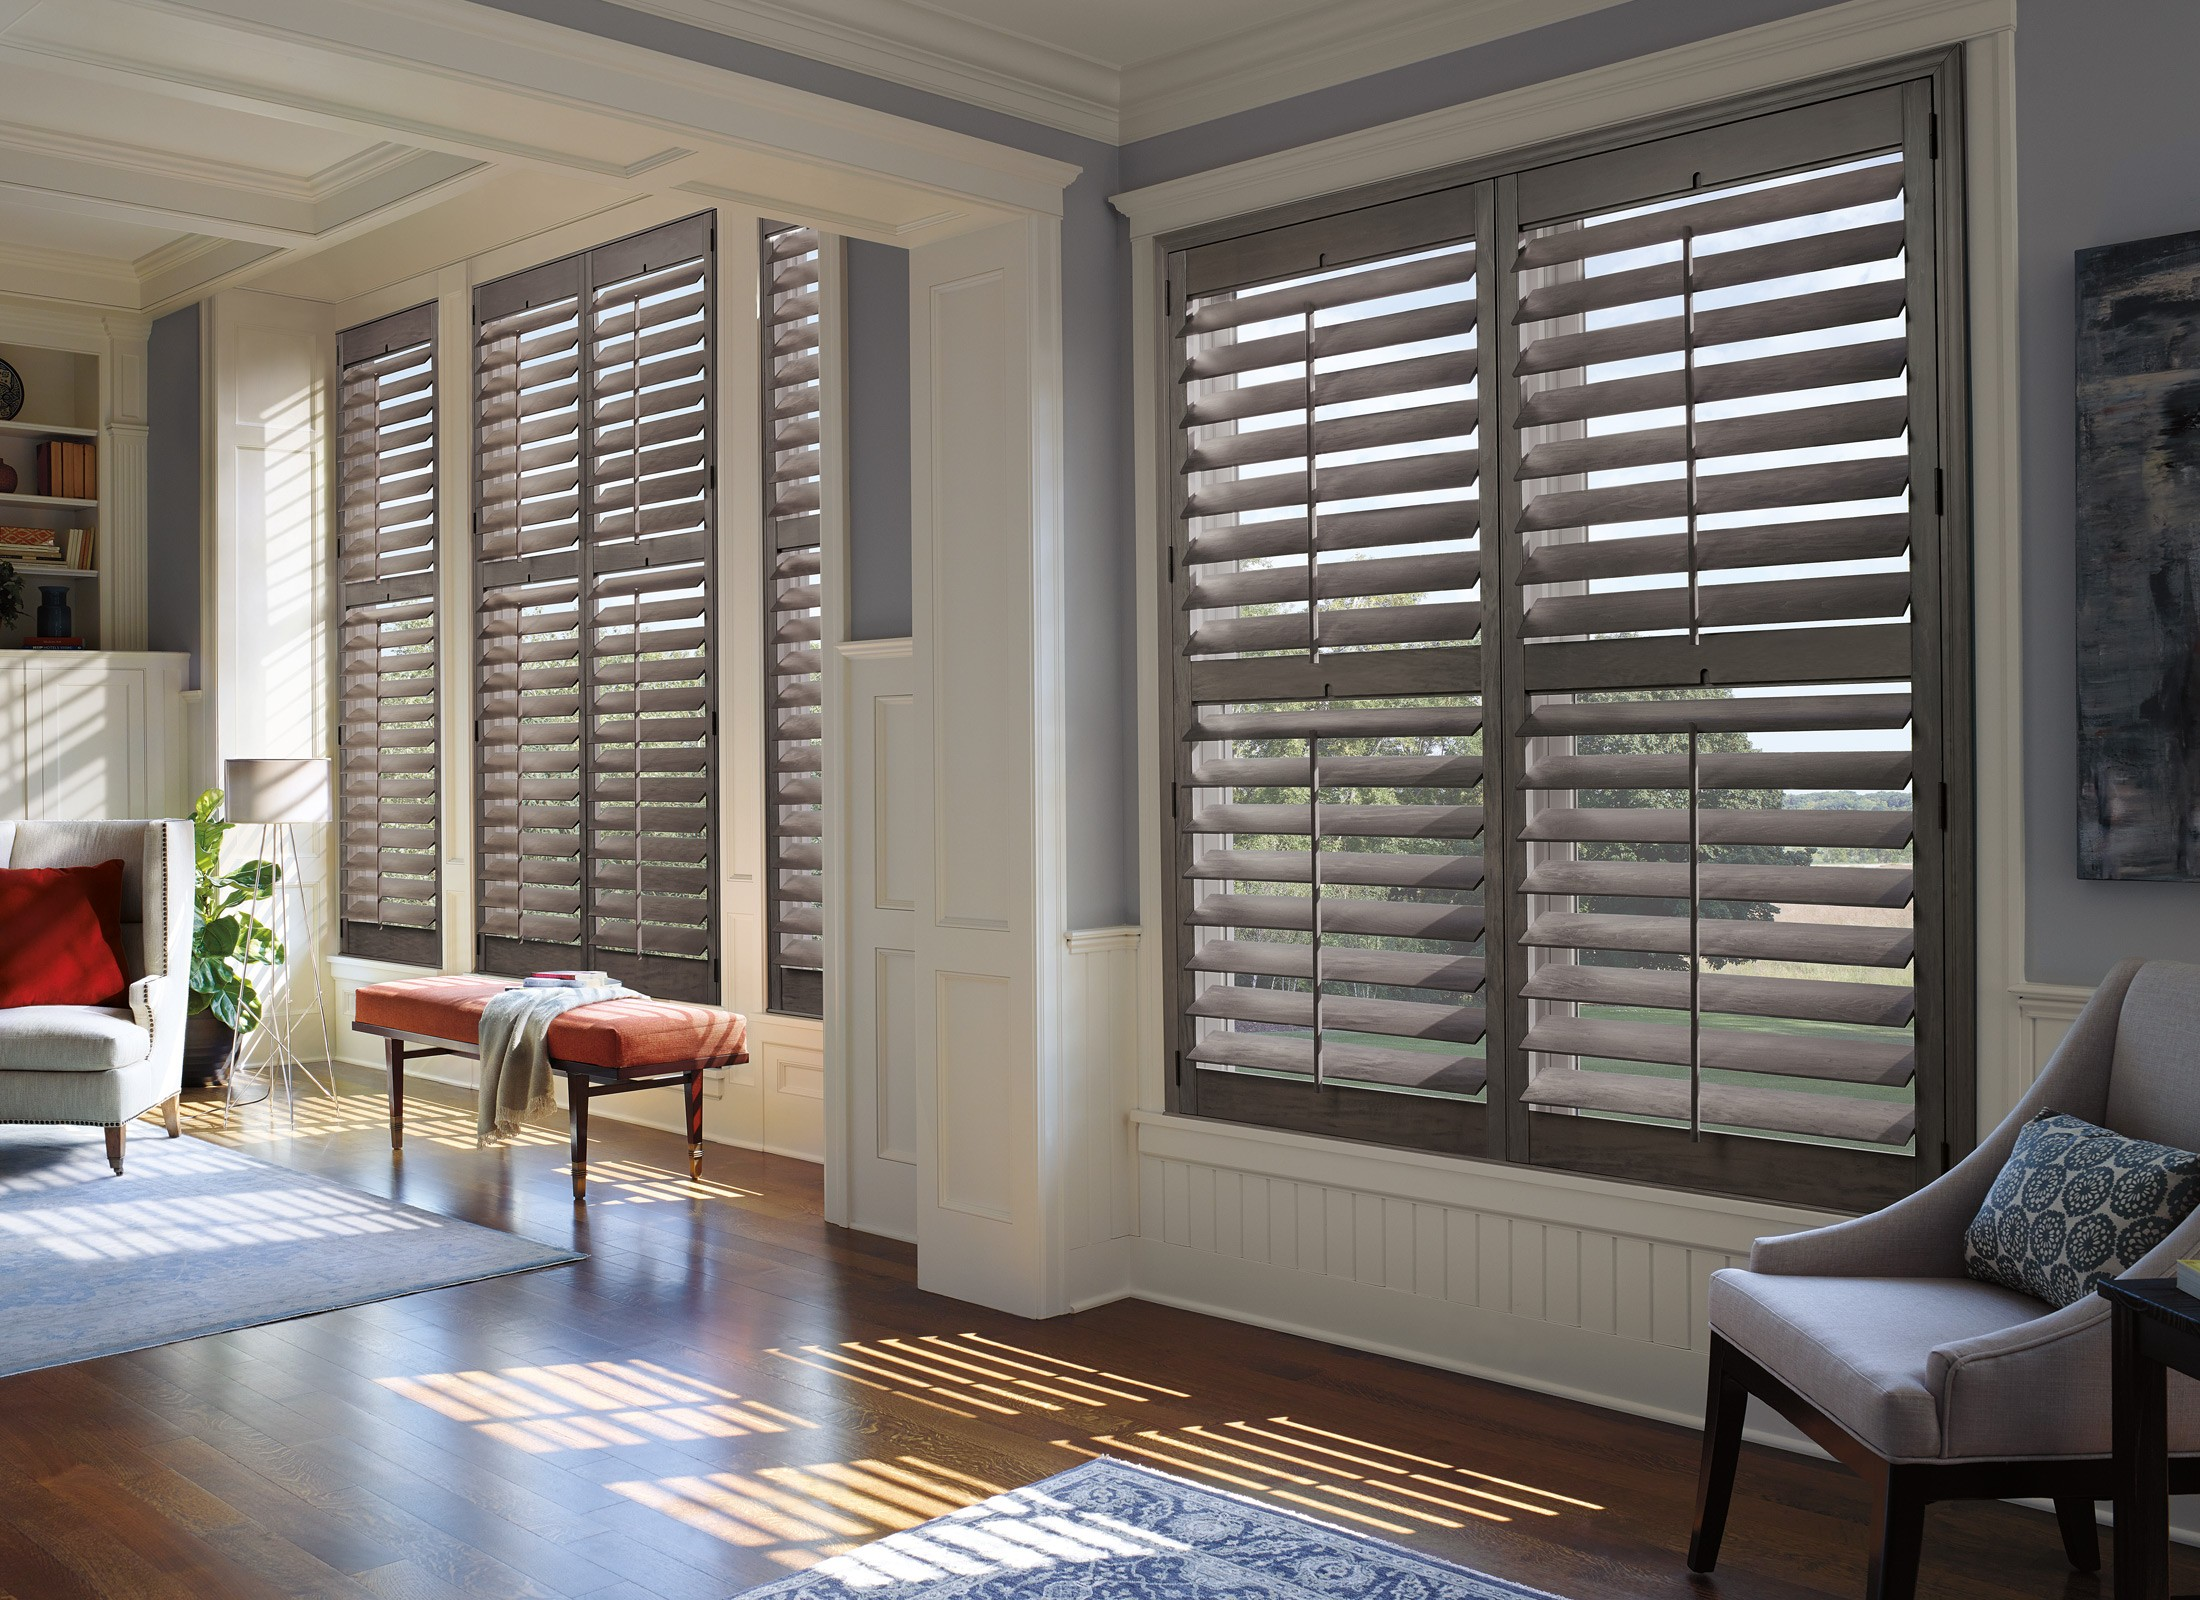 Distinct Shutters & Window Coverings in Vancouver - Blinds Expert | New Accent